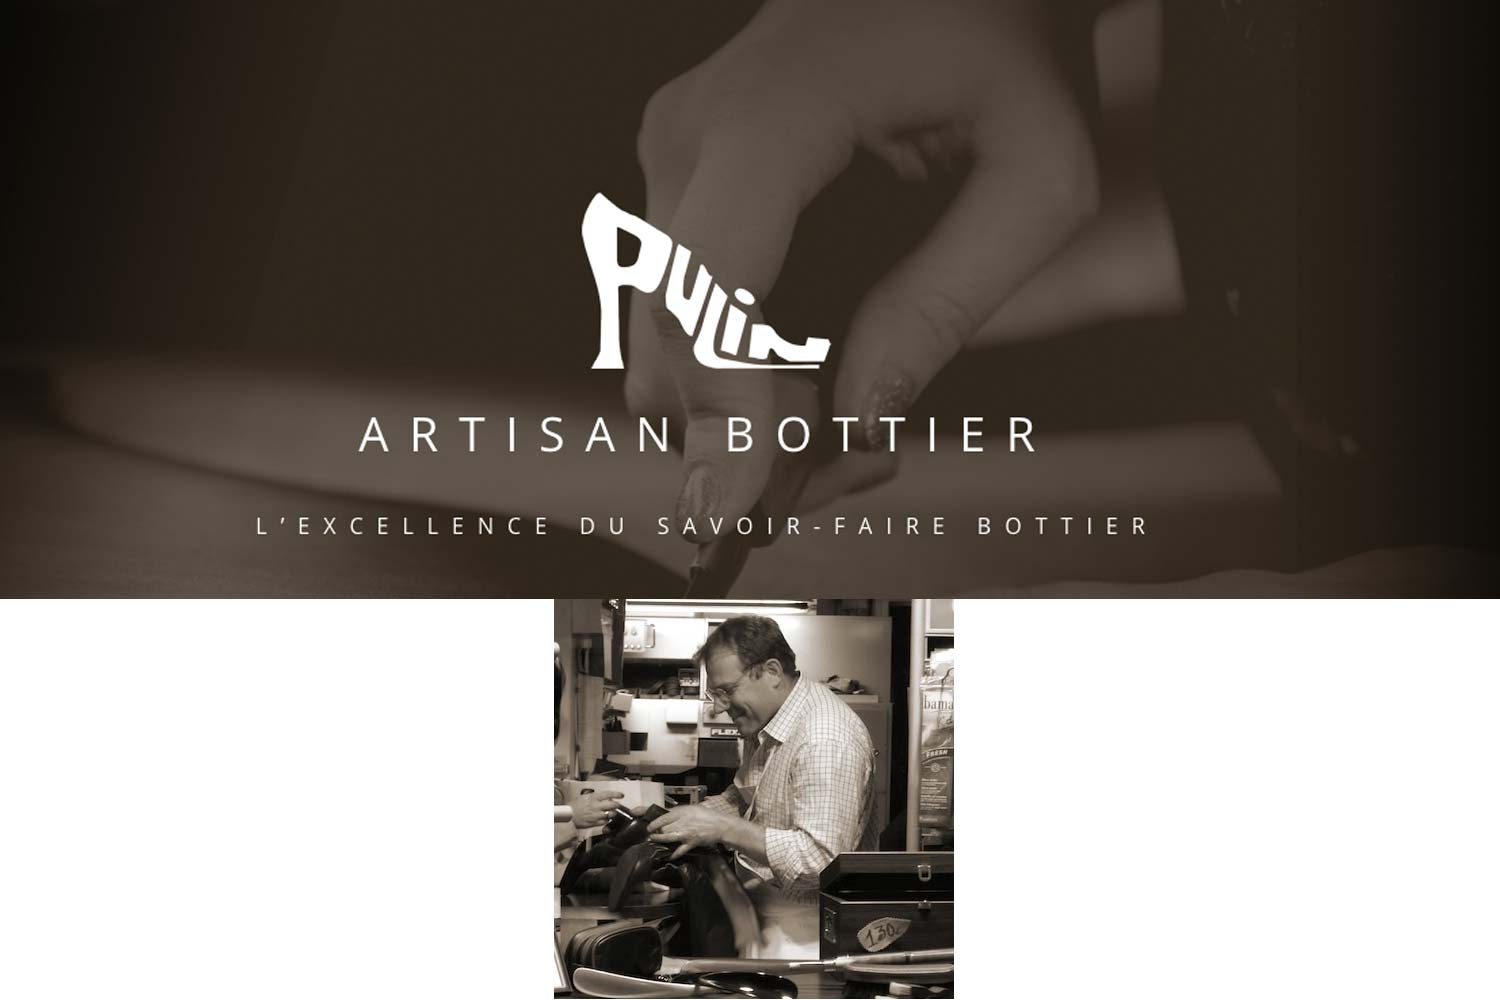 pulin artisan bottier